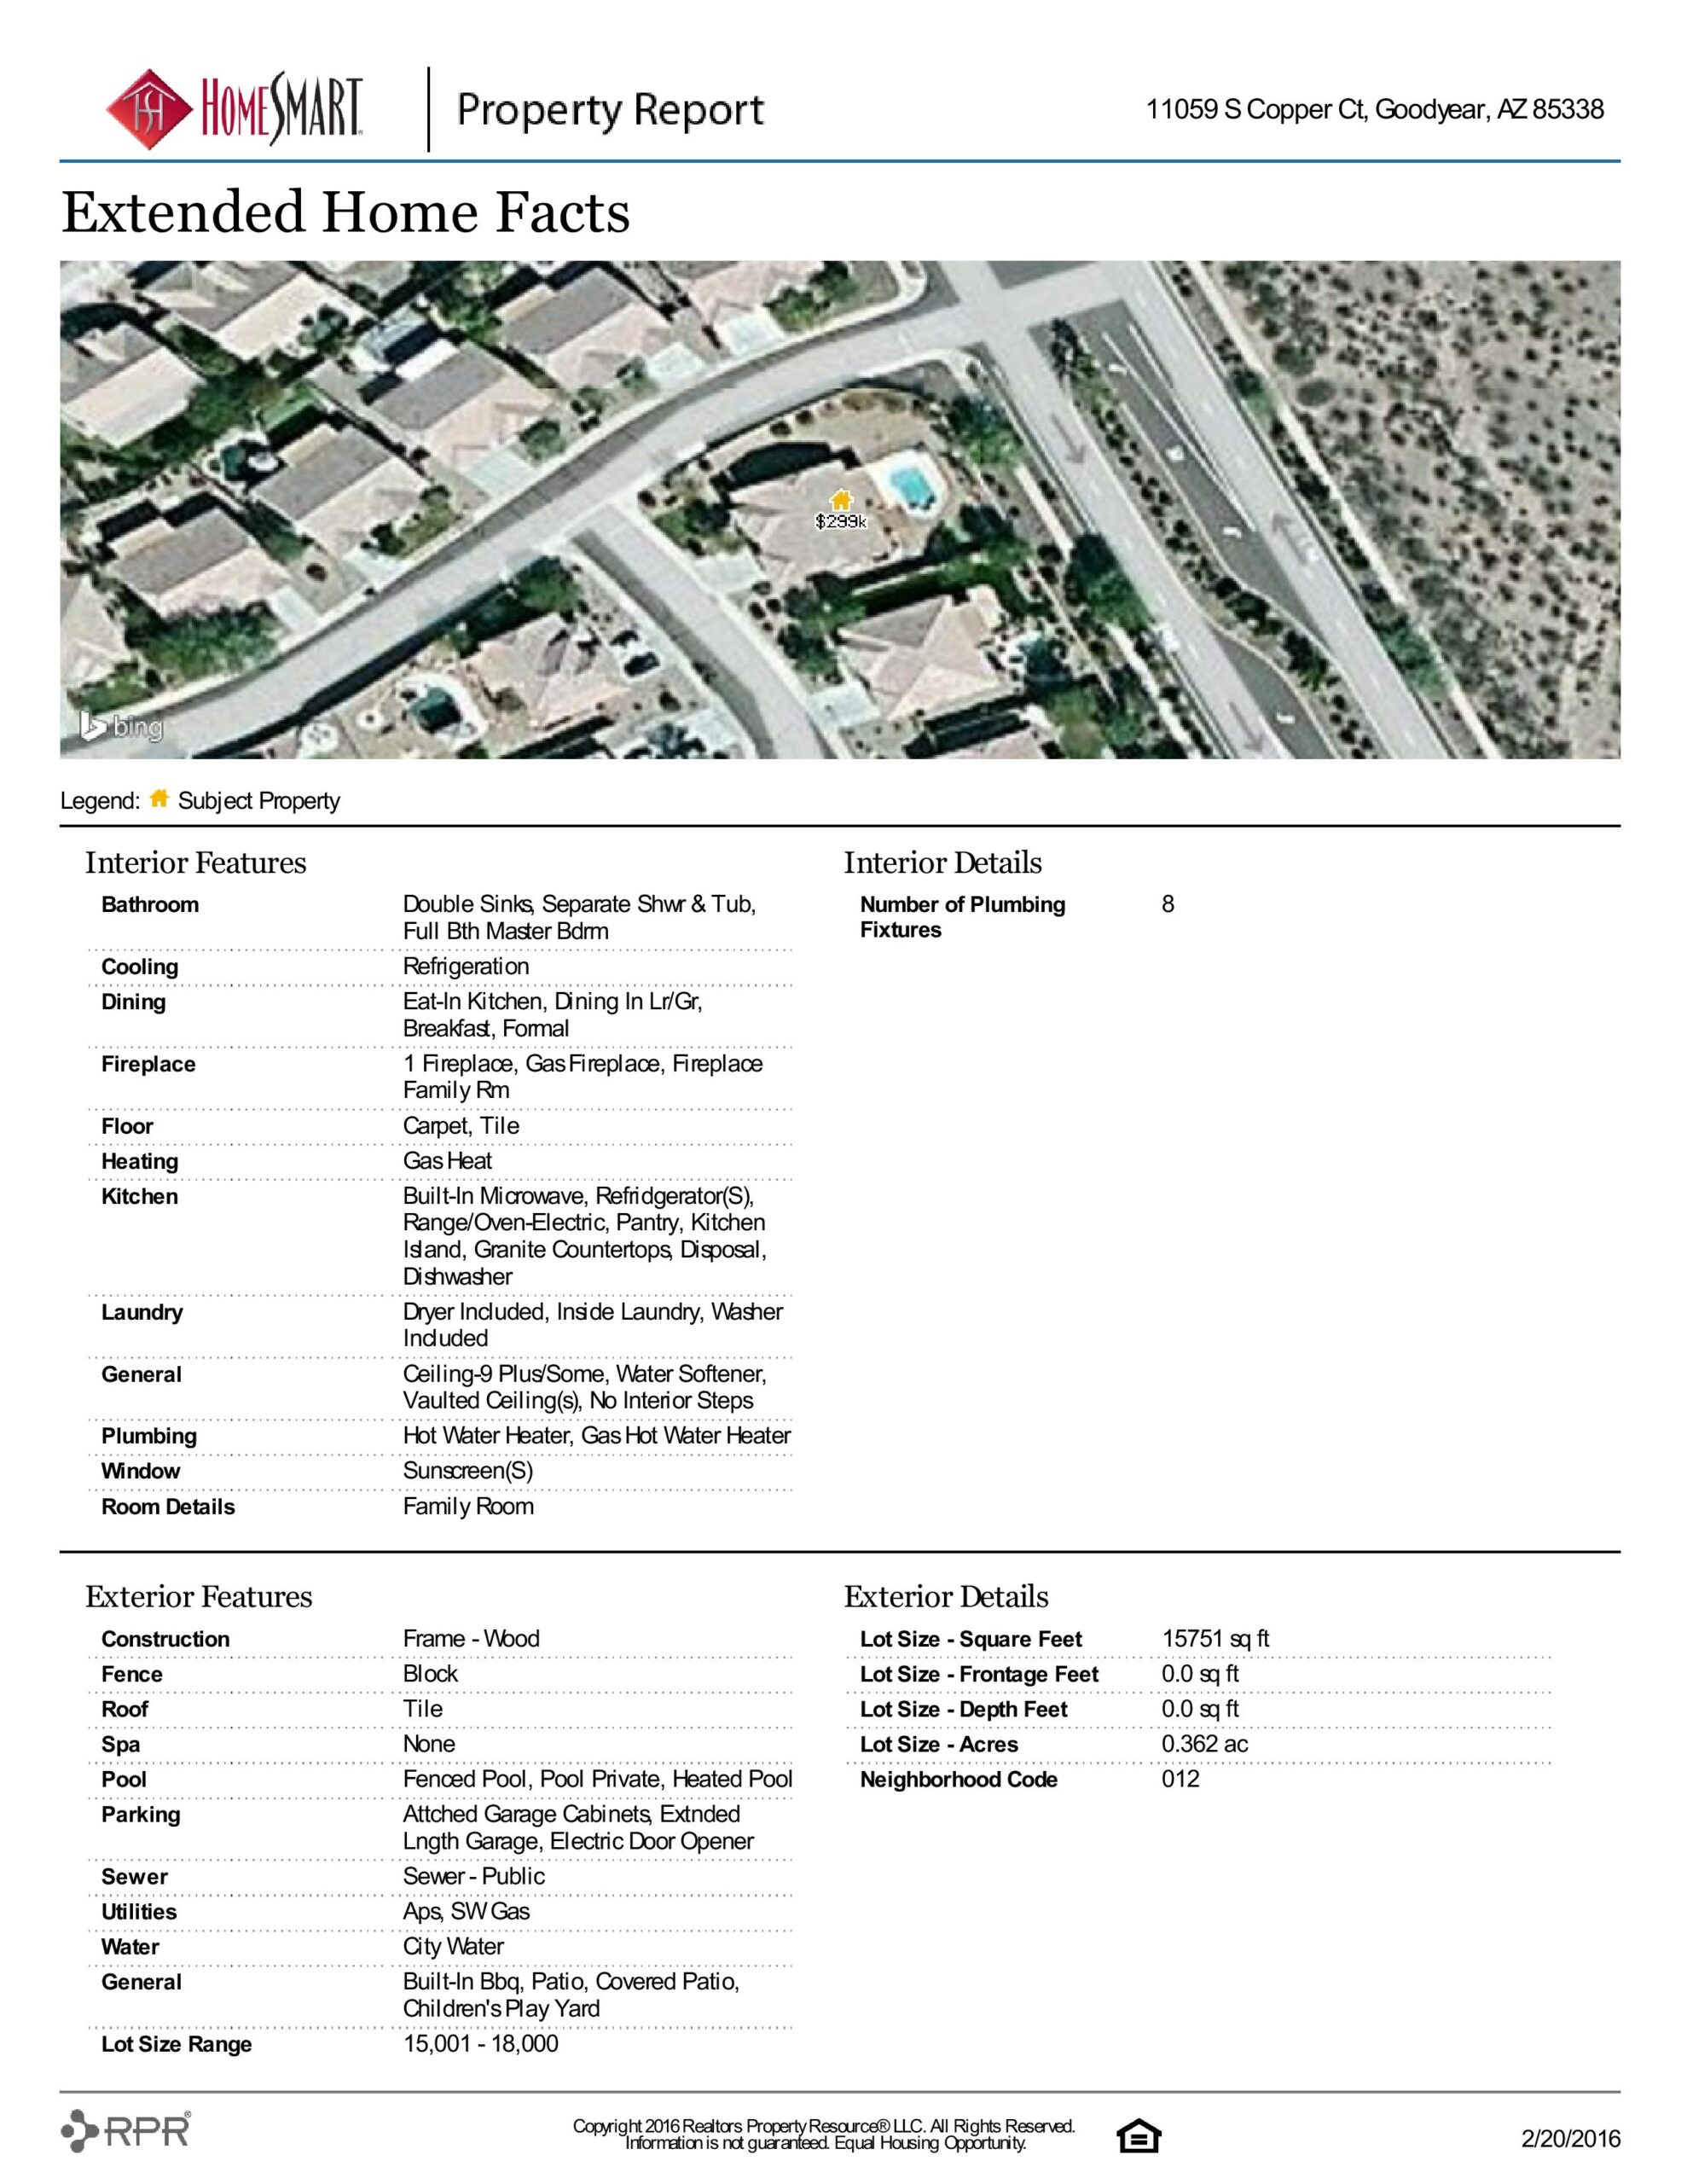 11059 S COPPER CT PROPERTY REPORT-page-004